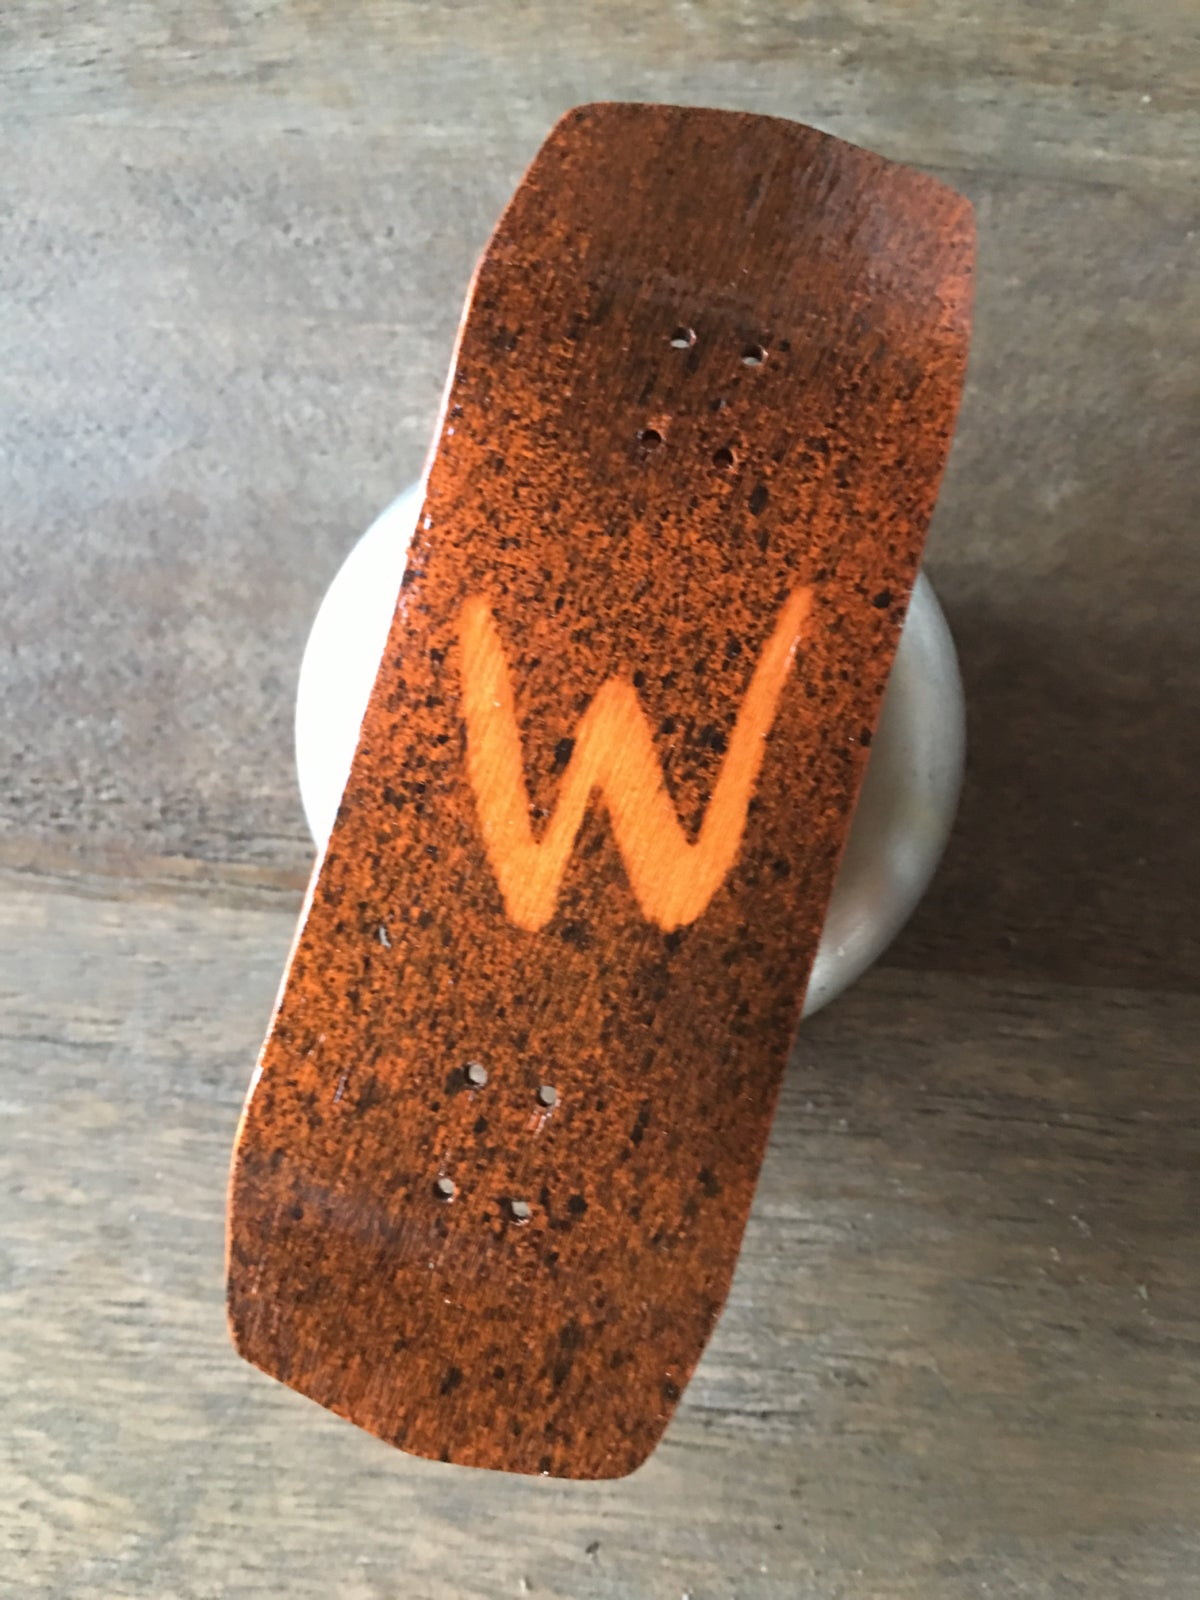 WCKD Orange 34mm Fingerboard (Reaper)